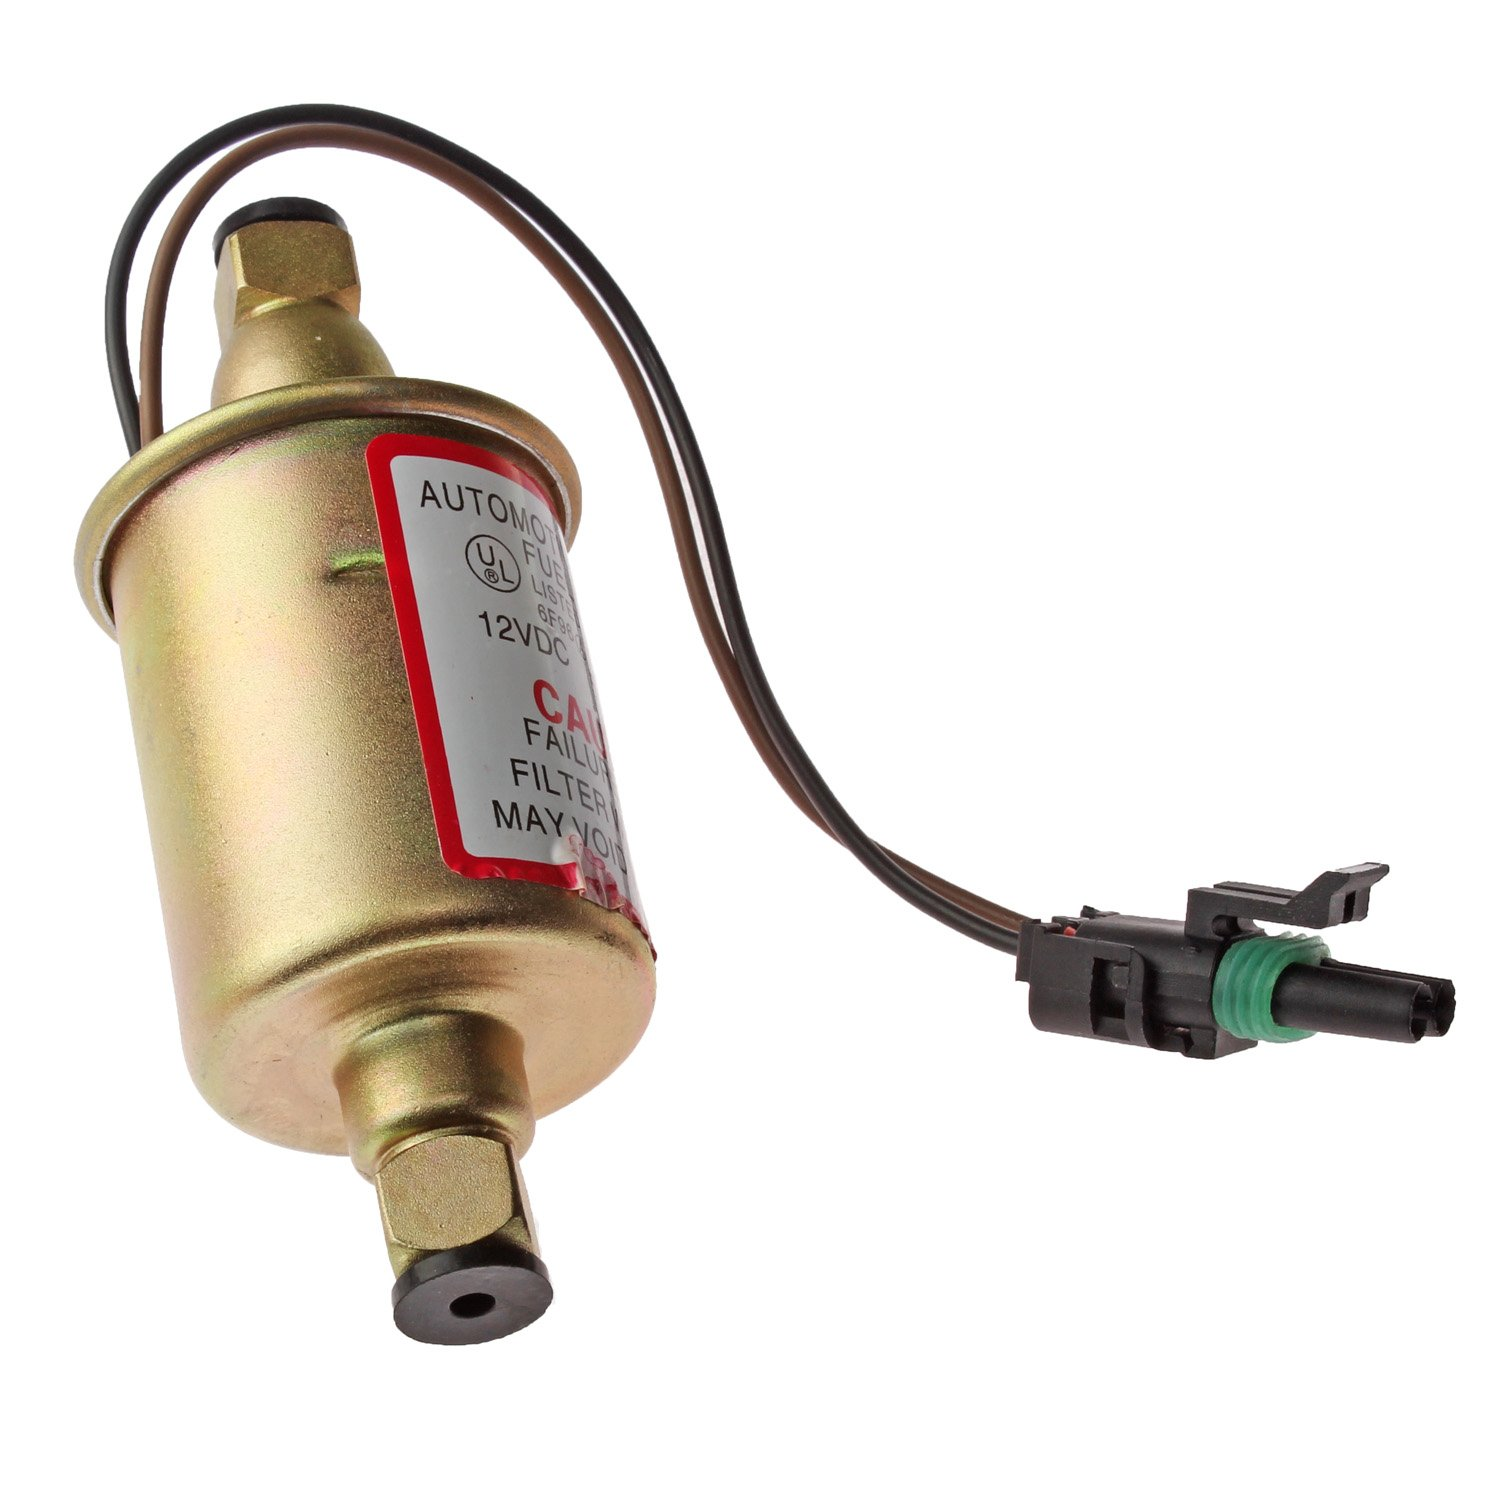 Mover Parts New 65l Fuel Lift Pump Fits 1992 2002 Gm Chevrolet Truck P30 Filter Diesel Acdelco Not Fit 1994 Chevy Automotive